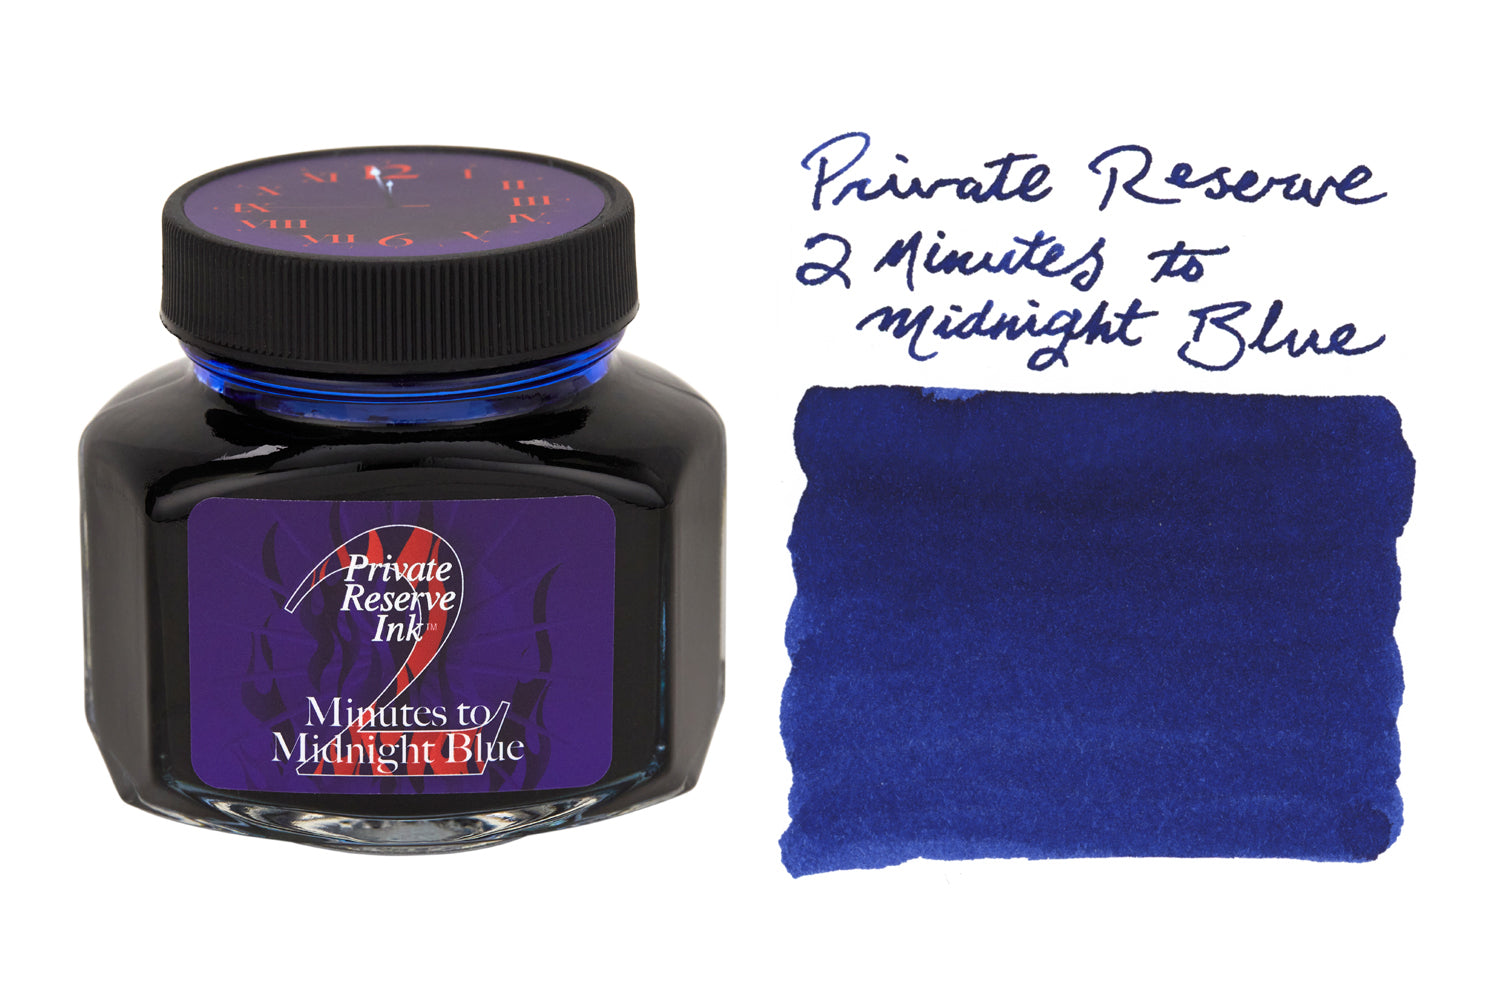 Private Reserve 2 Minutes to Midnight Blue - 110ml Bottled Ink (Limite –  The Goulet Pen Company